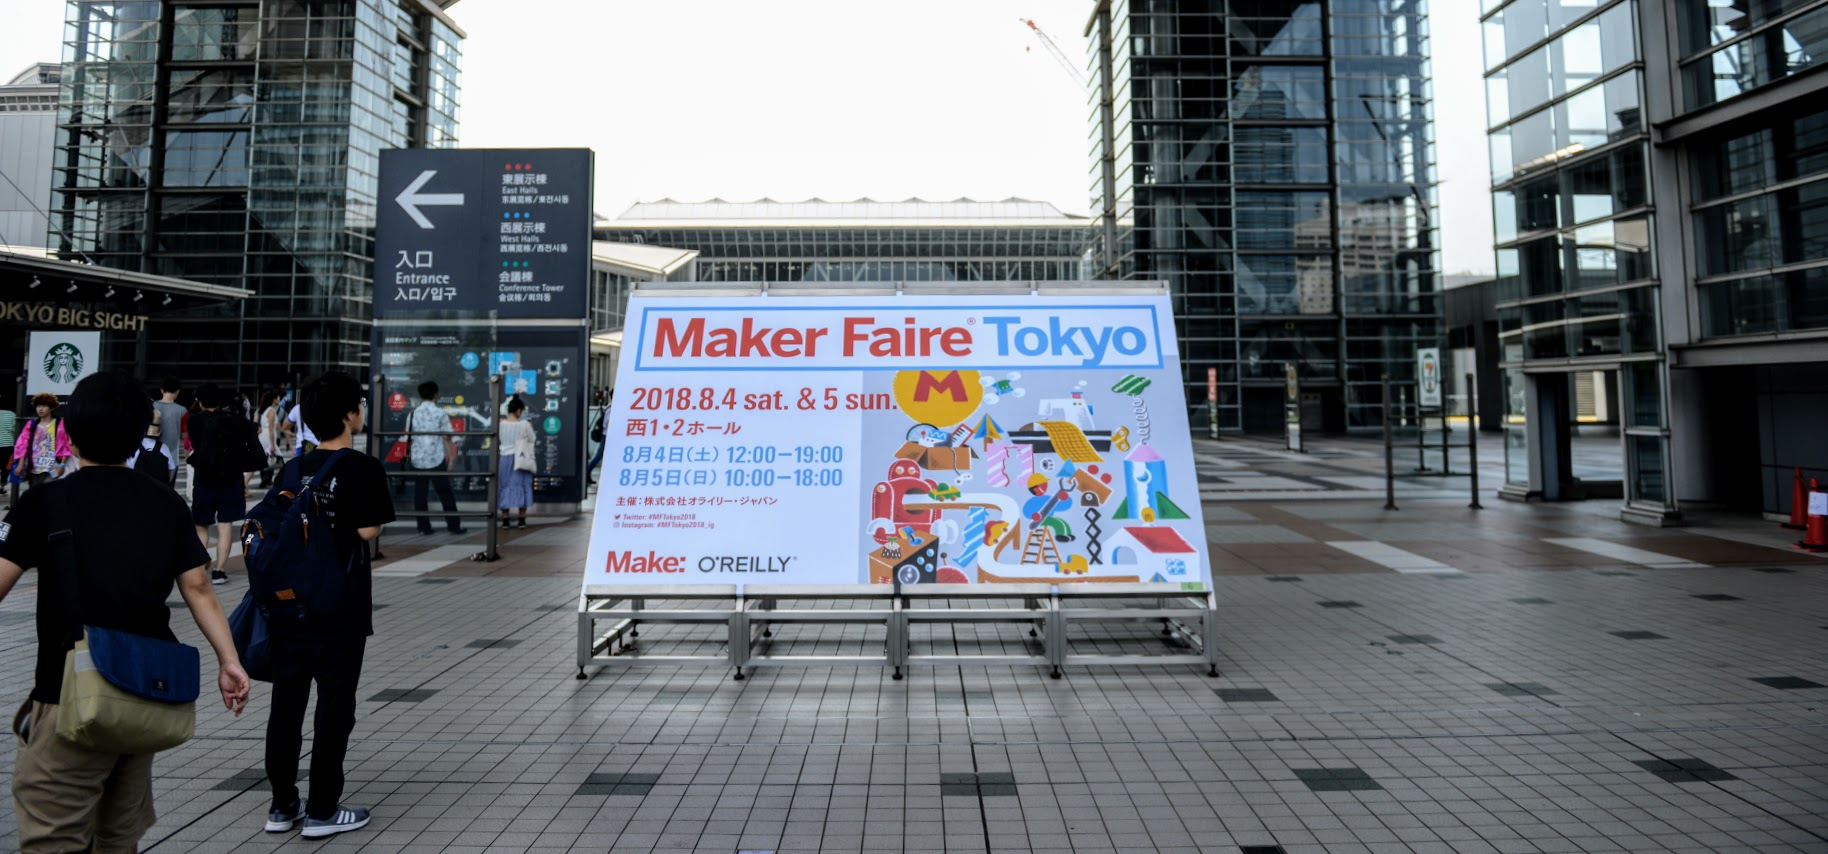 The Sights and Sounds of Maker Faire Tokyo